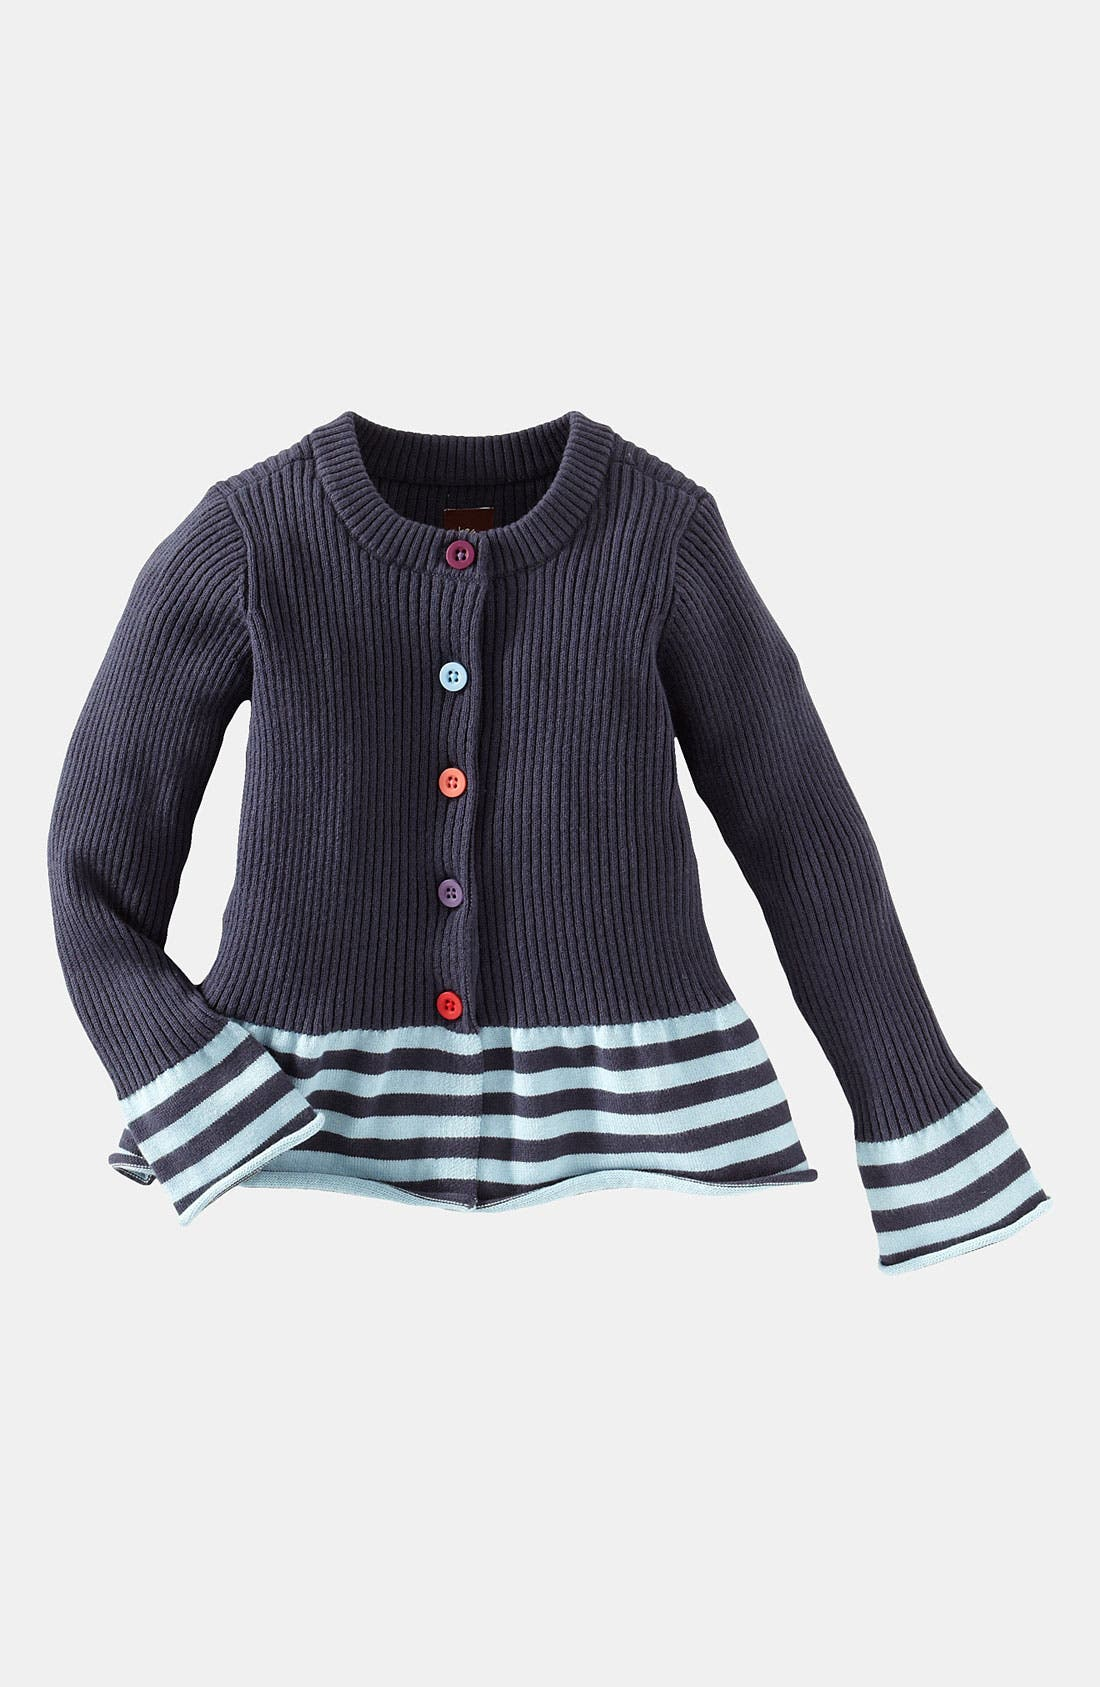 Alternate Image 1 Selected - Tea Collection 'Bongani' Stripe Sweater (Little Girls & Big Girls)